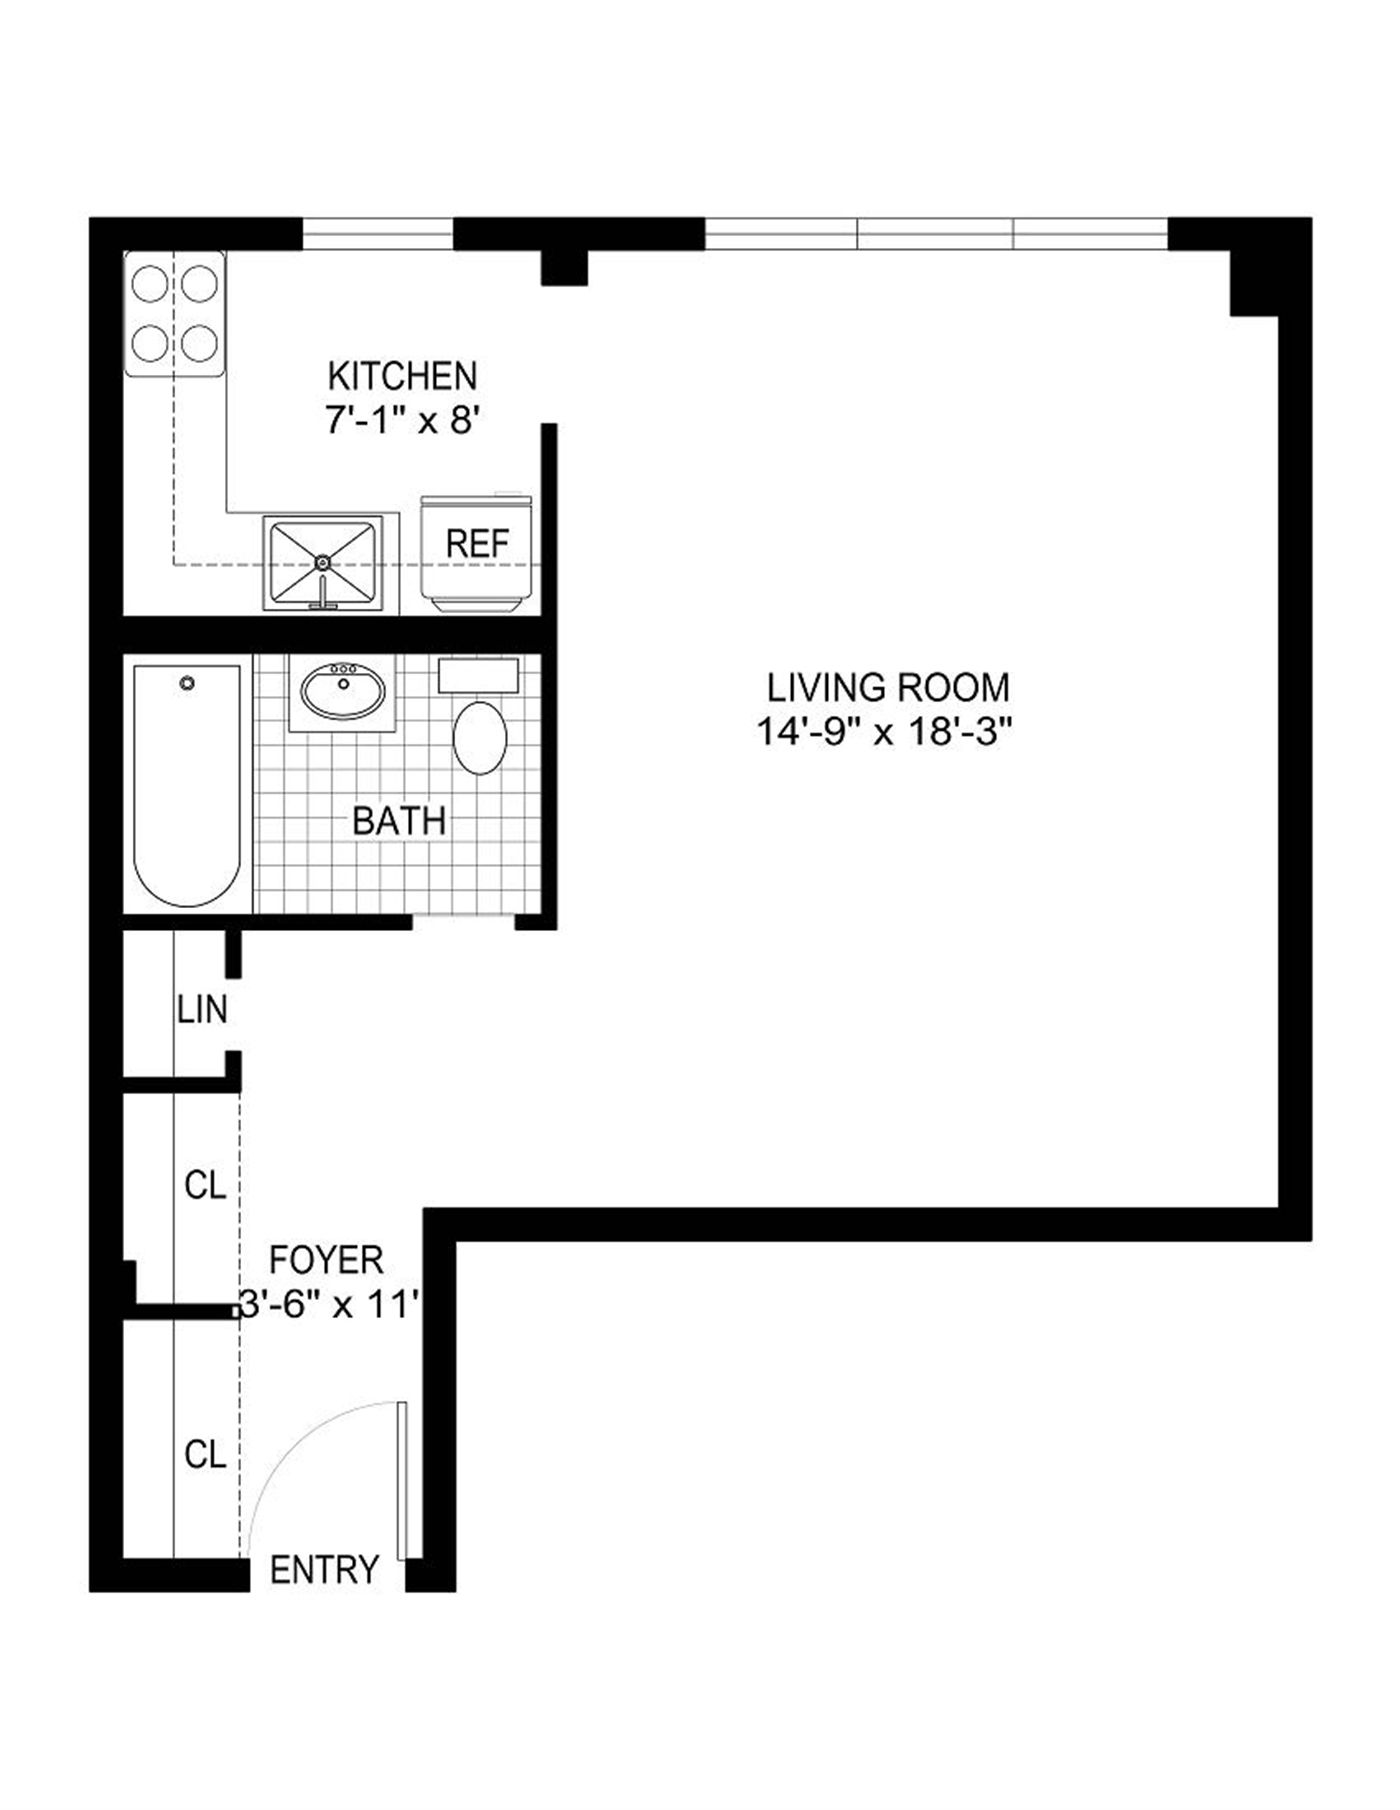 Excellent Floor Plan For Apartments With One Room Style Jpg 1400 1810 Arquitetura